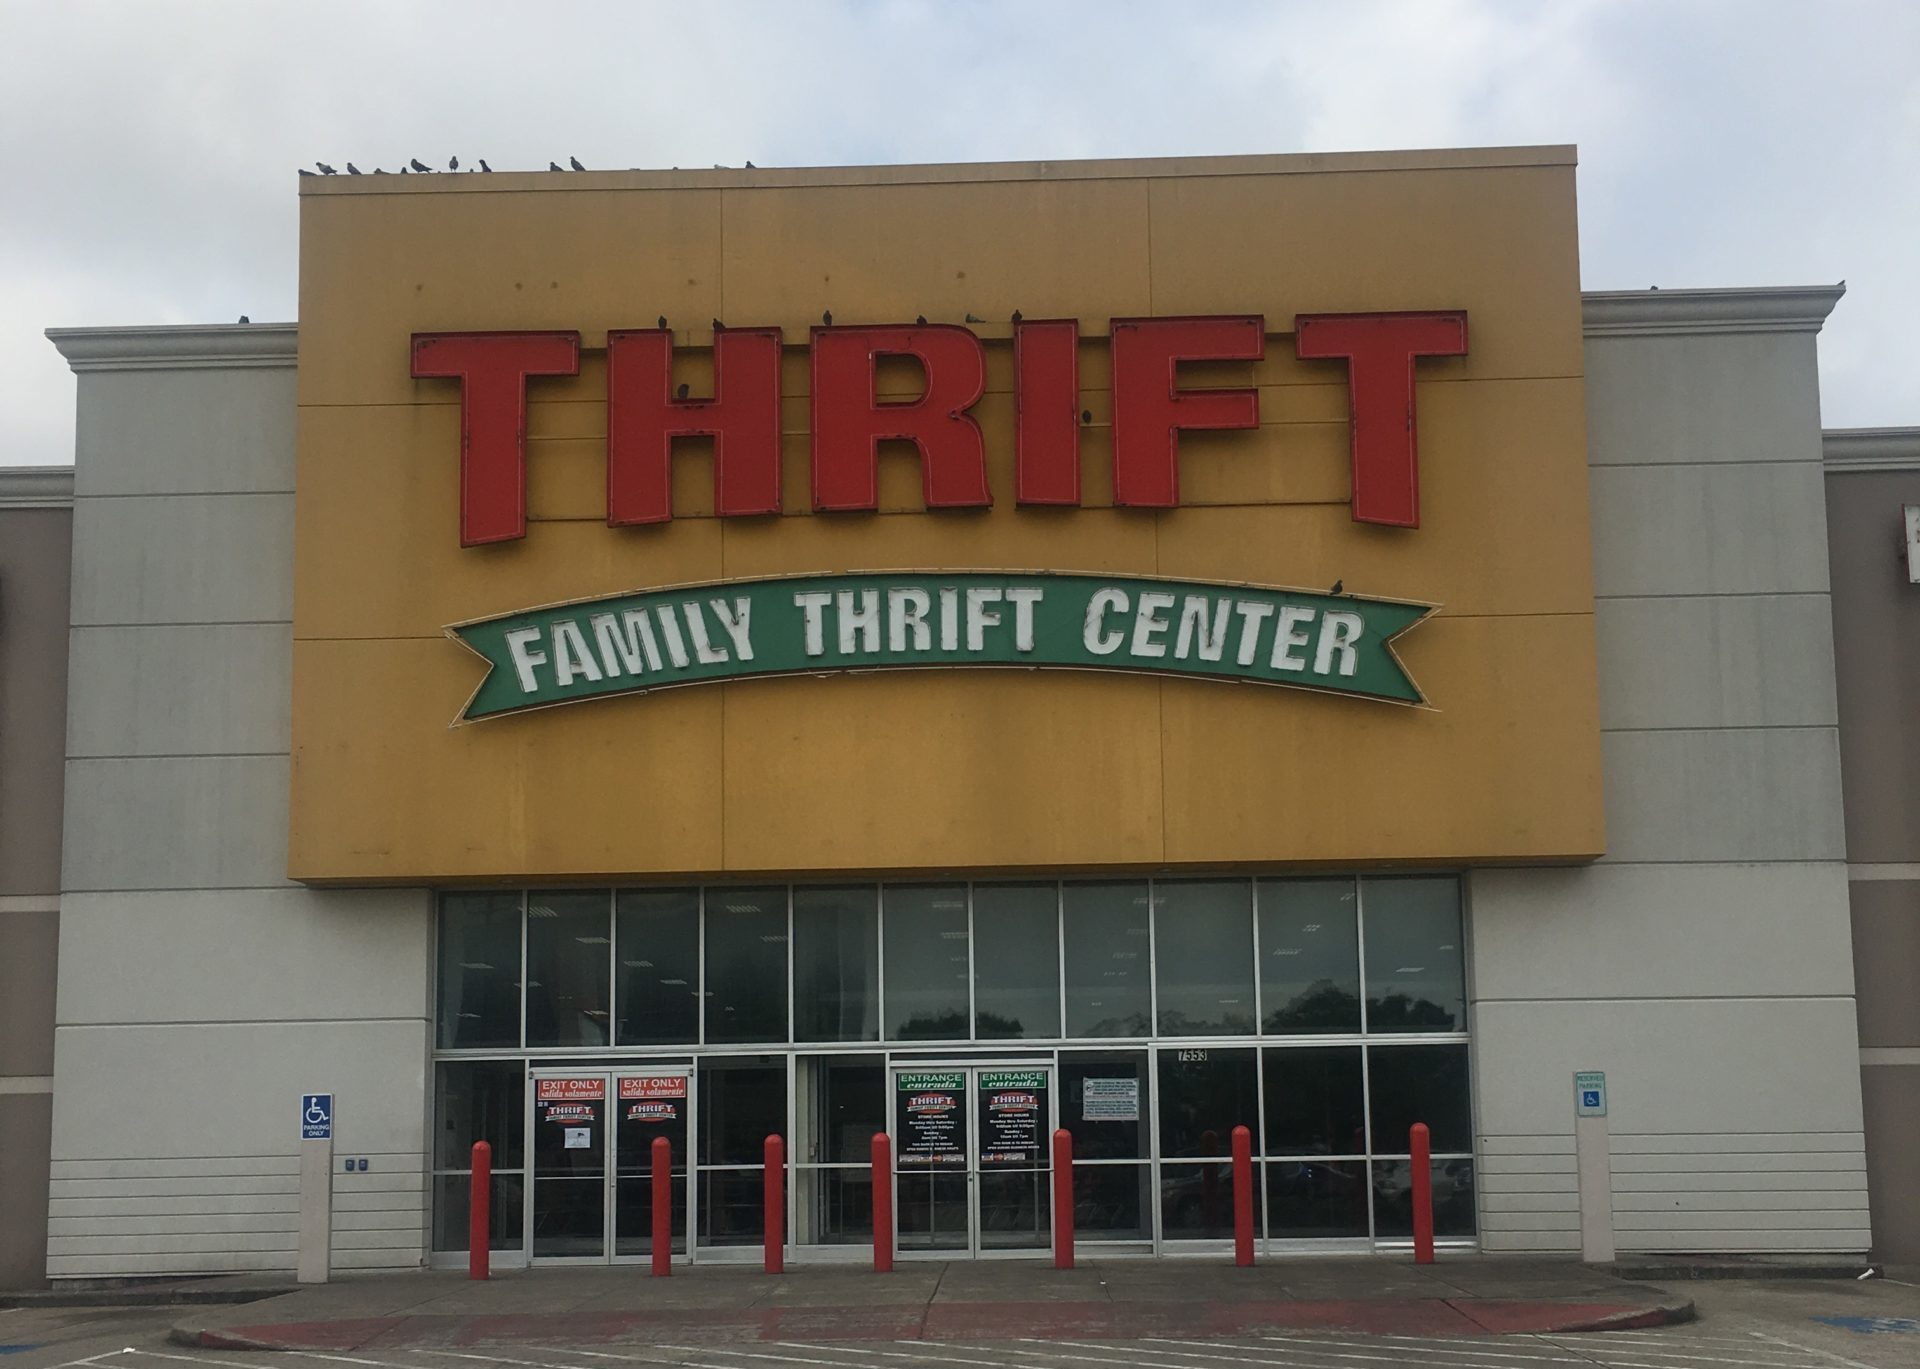 Storefront of Thrift Family Thrift Center